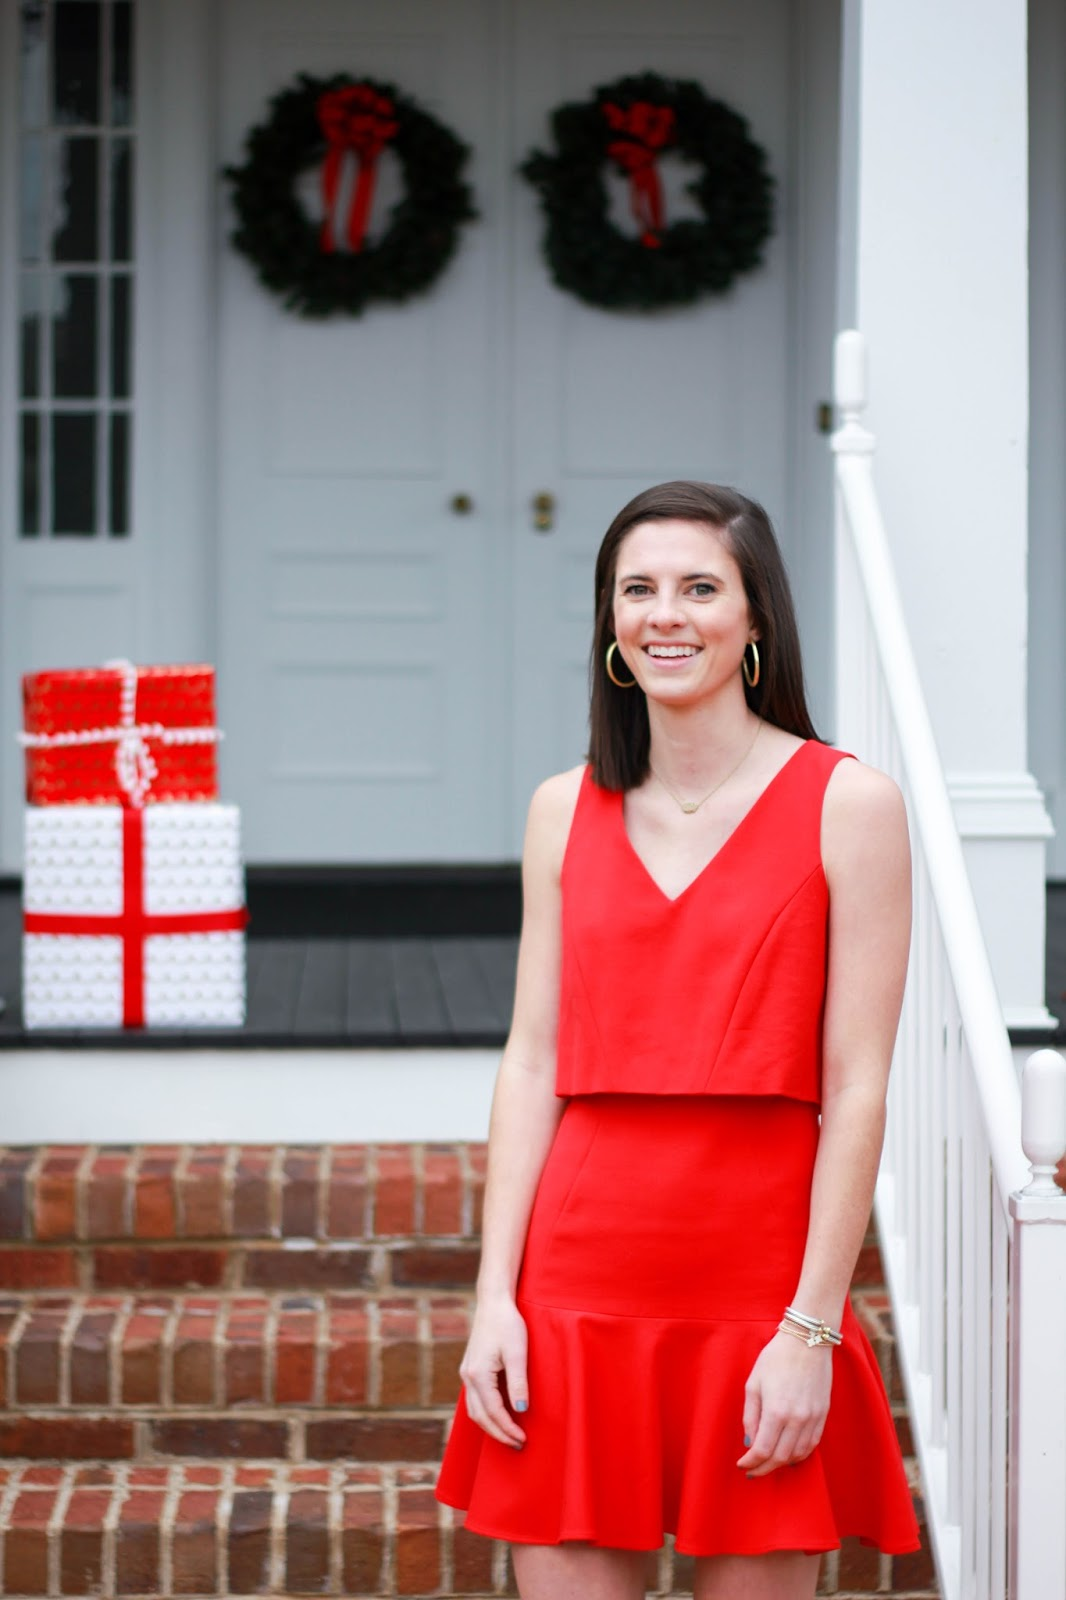 Prep In Your Step: Festive Frocks for the Holiday Season